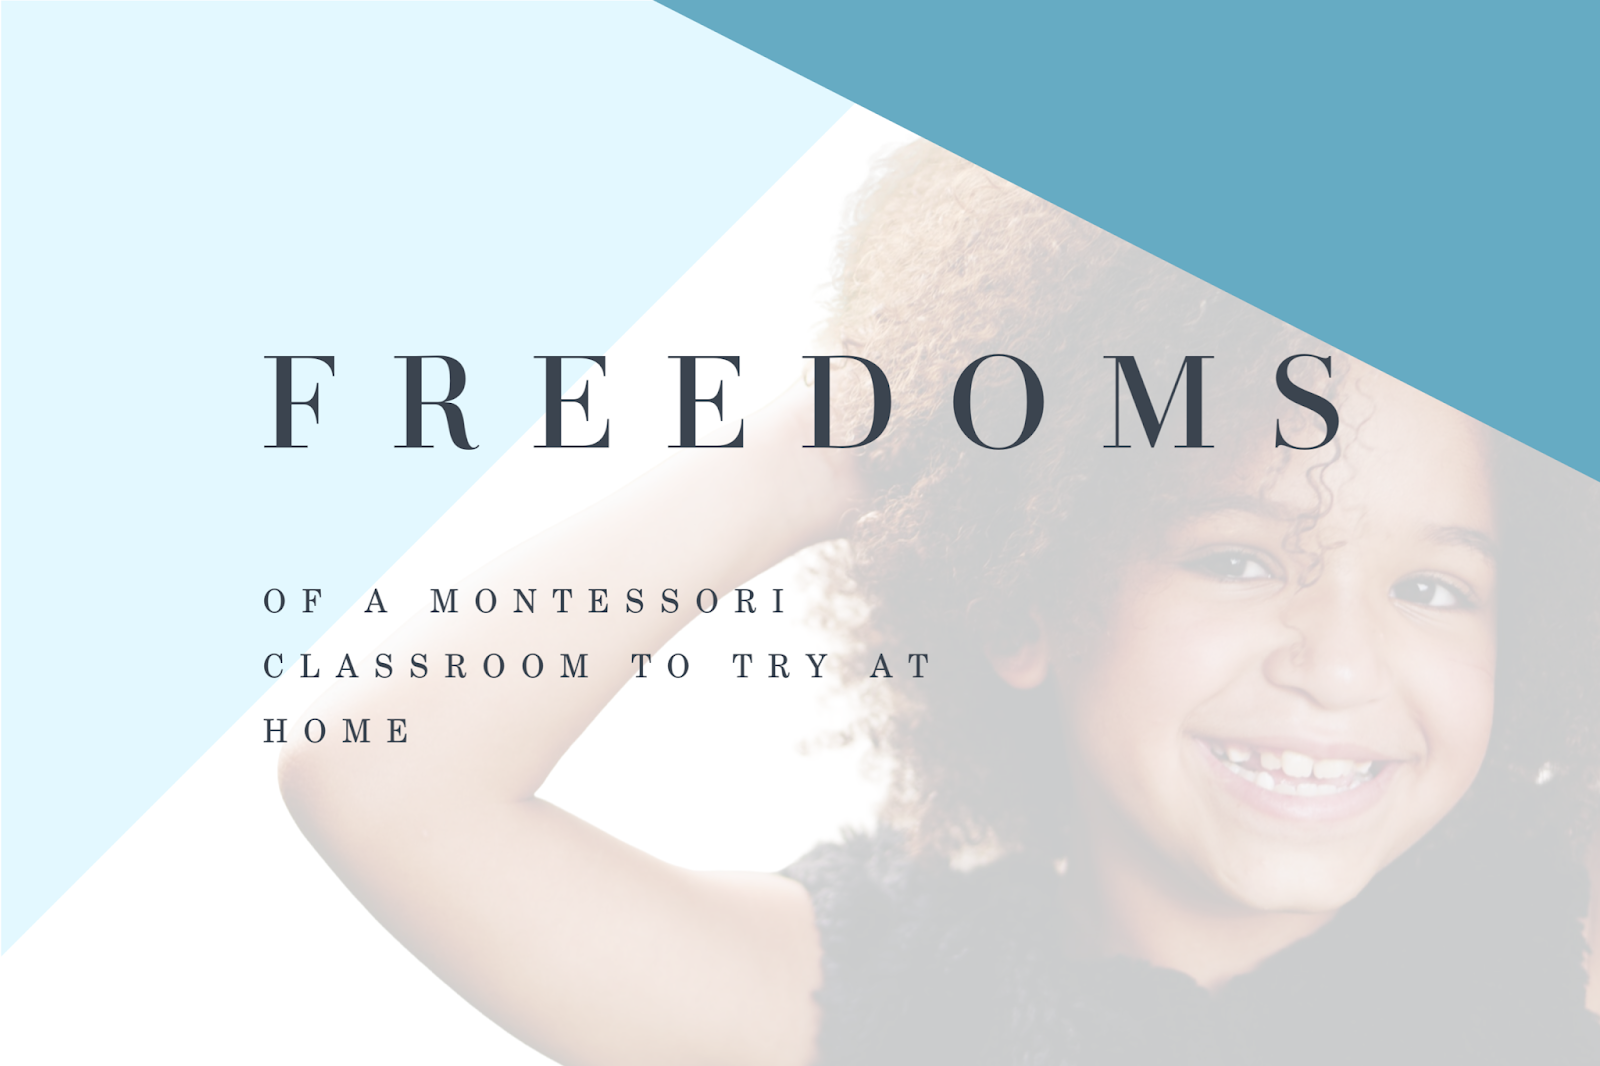 3 Freedoms of a Montessori classroom to incorporate into a Montessori home